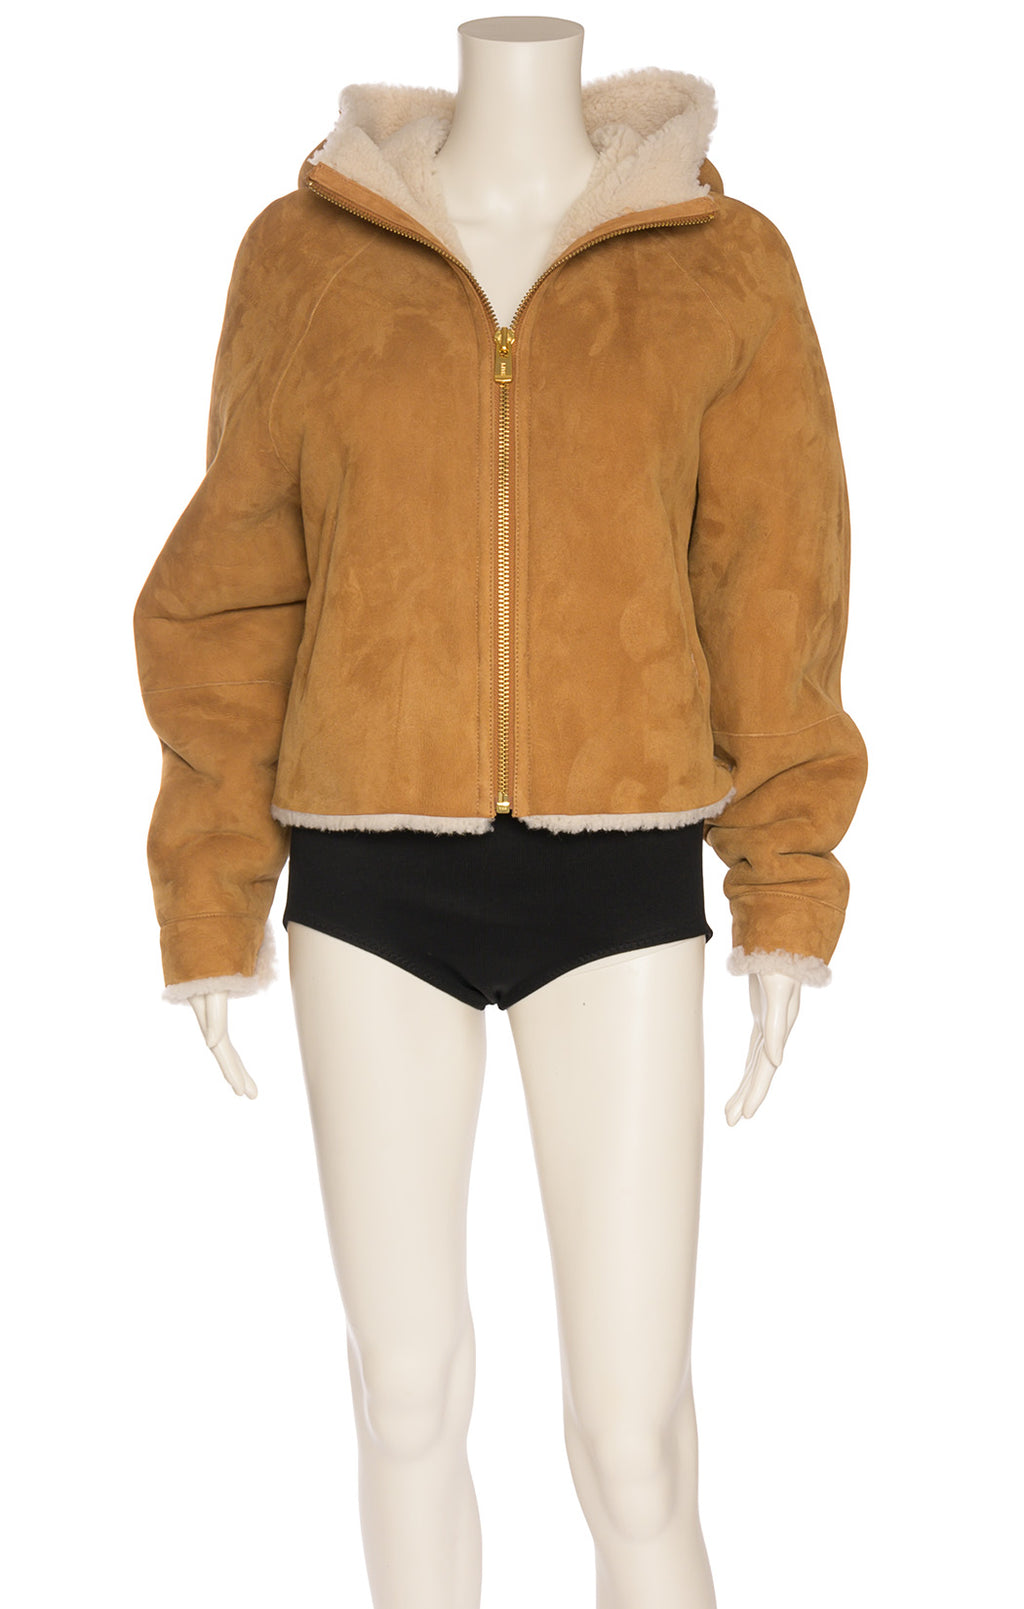 Natural colored leather and sheepskins jacket with zipper front and side front pockets